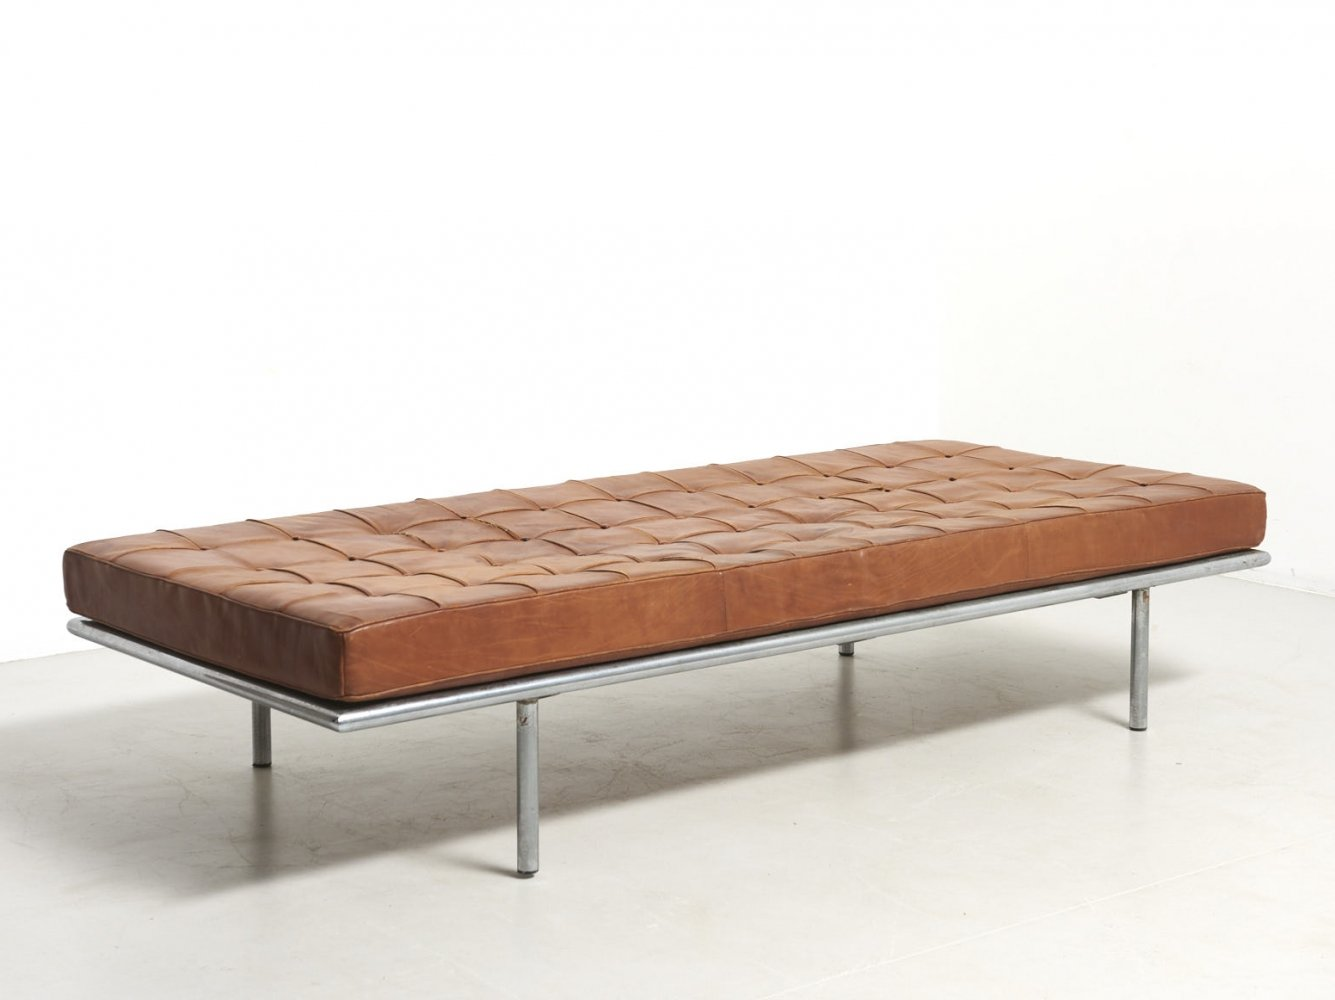 Rare Barcelona Daybed by Ludwig Mies van der Rohe for Knoll Int., Germany 1929